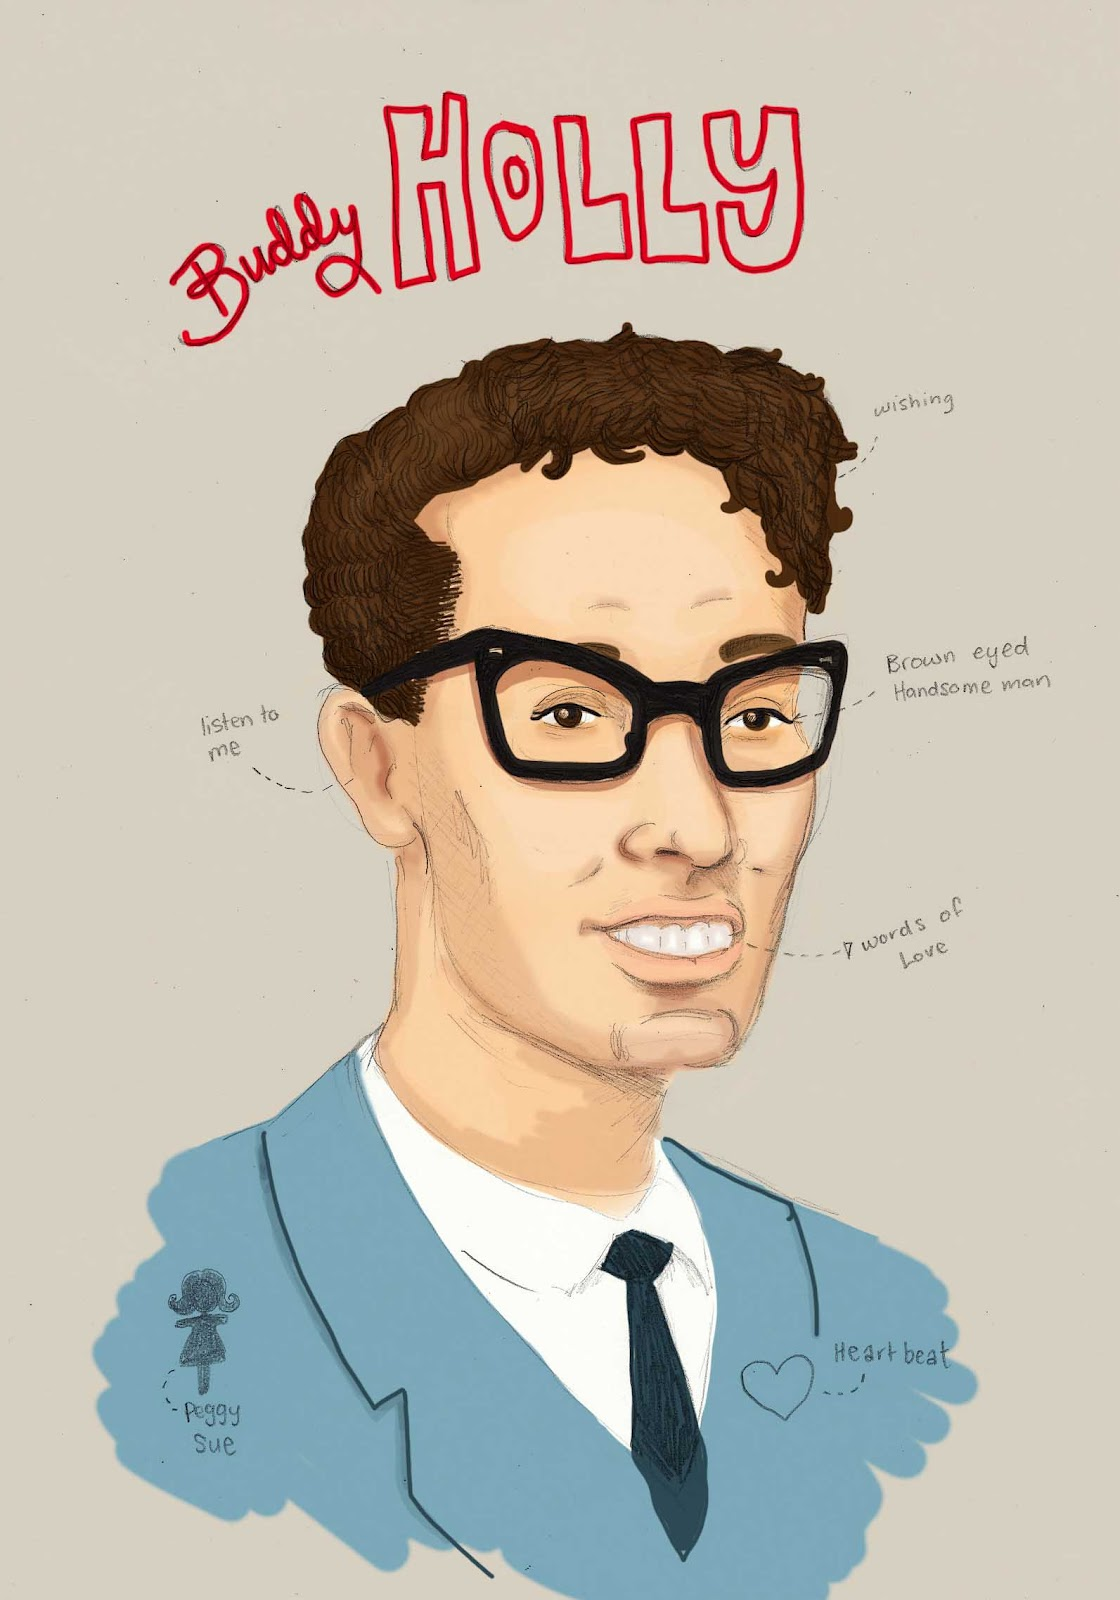 Buddy Holly - Nic Laswons Illustration And Comic Blog